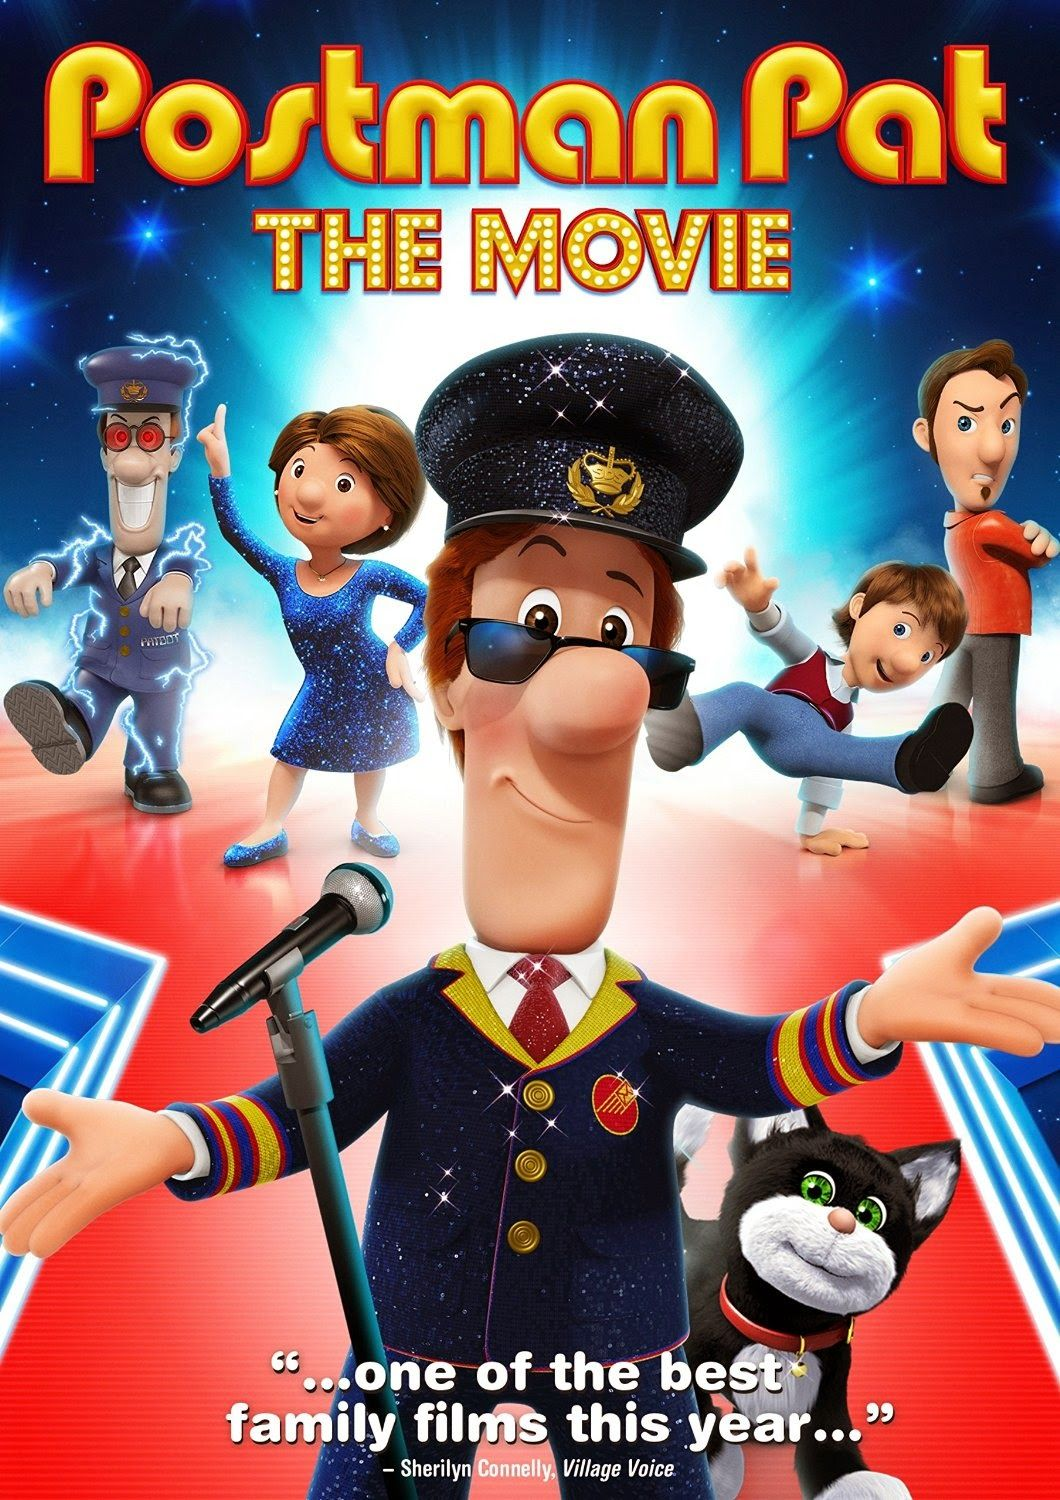 Sugar Pop Ribbons Reviews and Giveaways: Postman Pat: The Movie DVD & 2 Giveaways